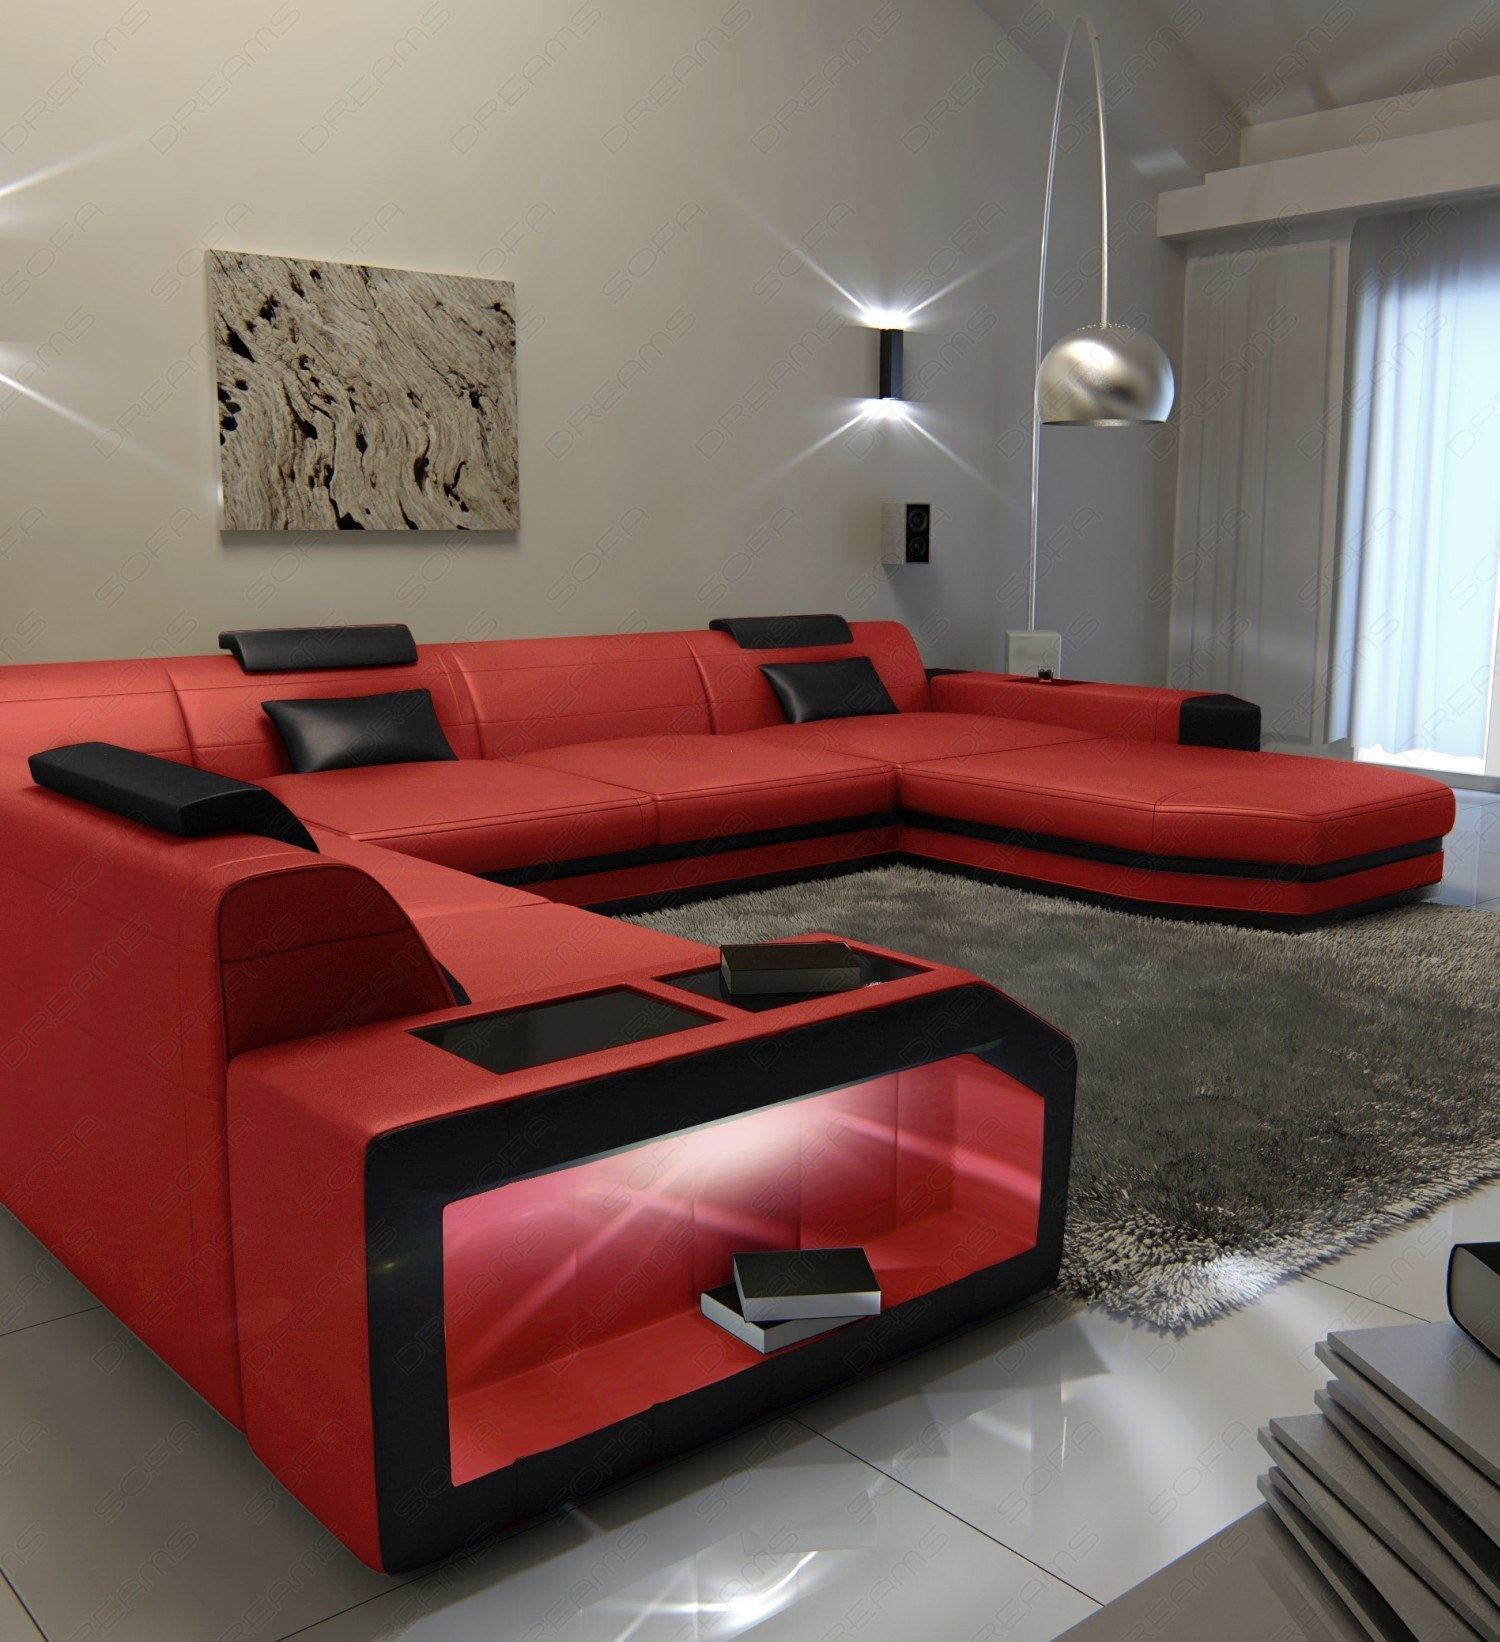 sofa u form xxl design sectional sofa matera xxl with led. Black Bedroom Furniture Sets. Home Design Ideas